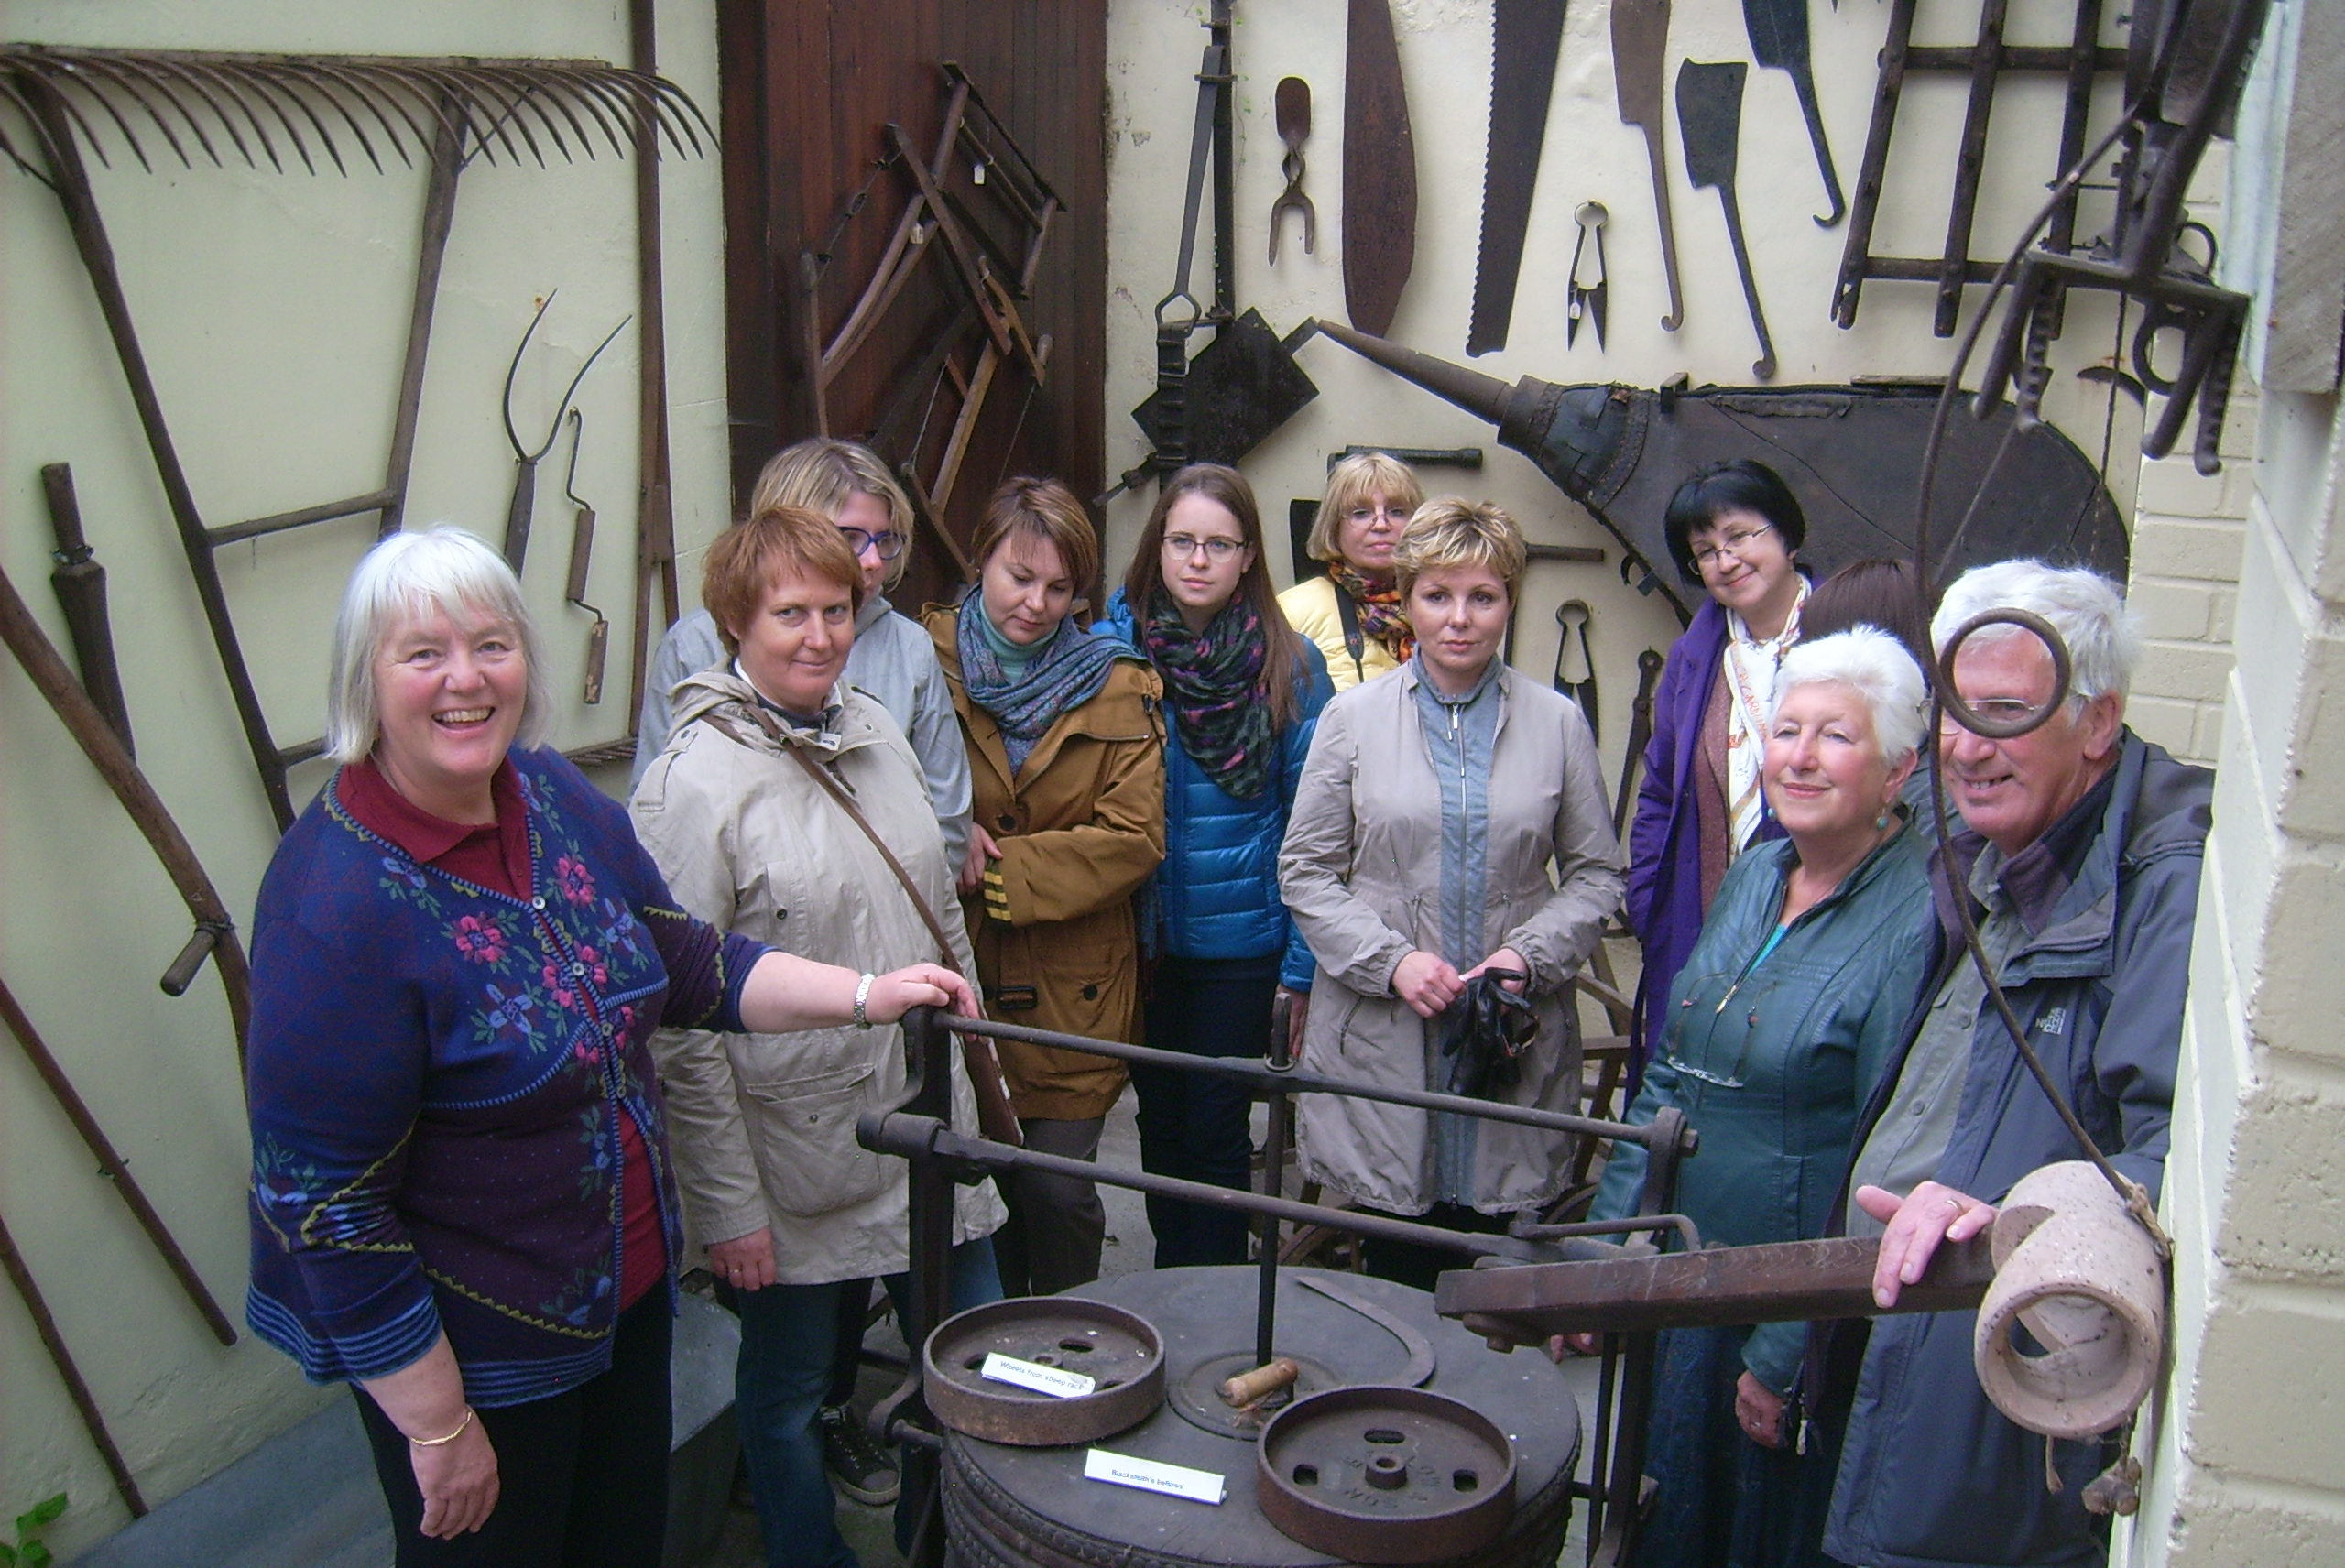 A group photo taking in the display of agricultural implements